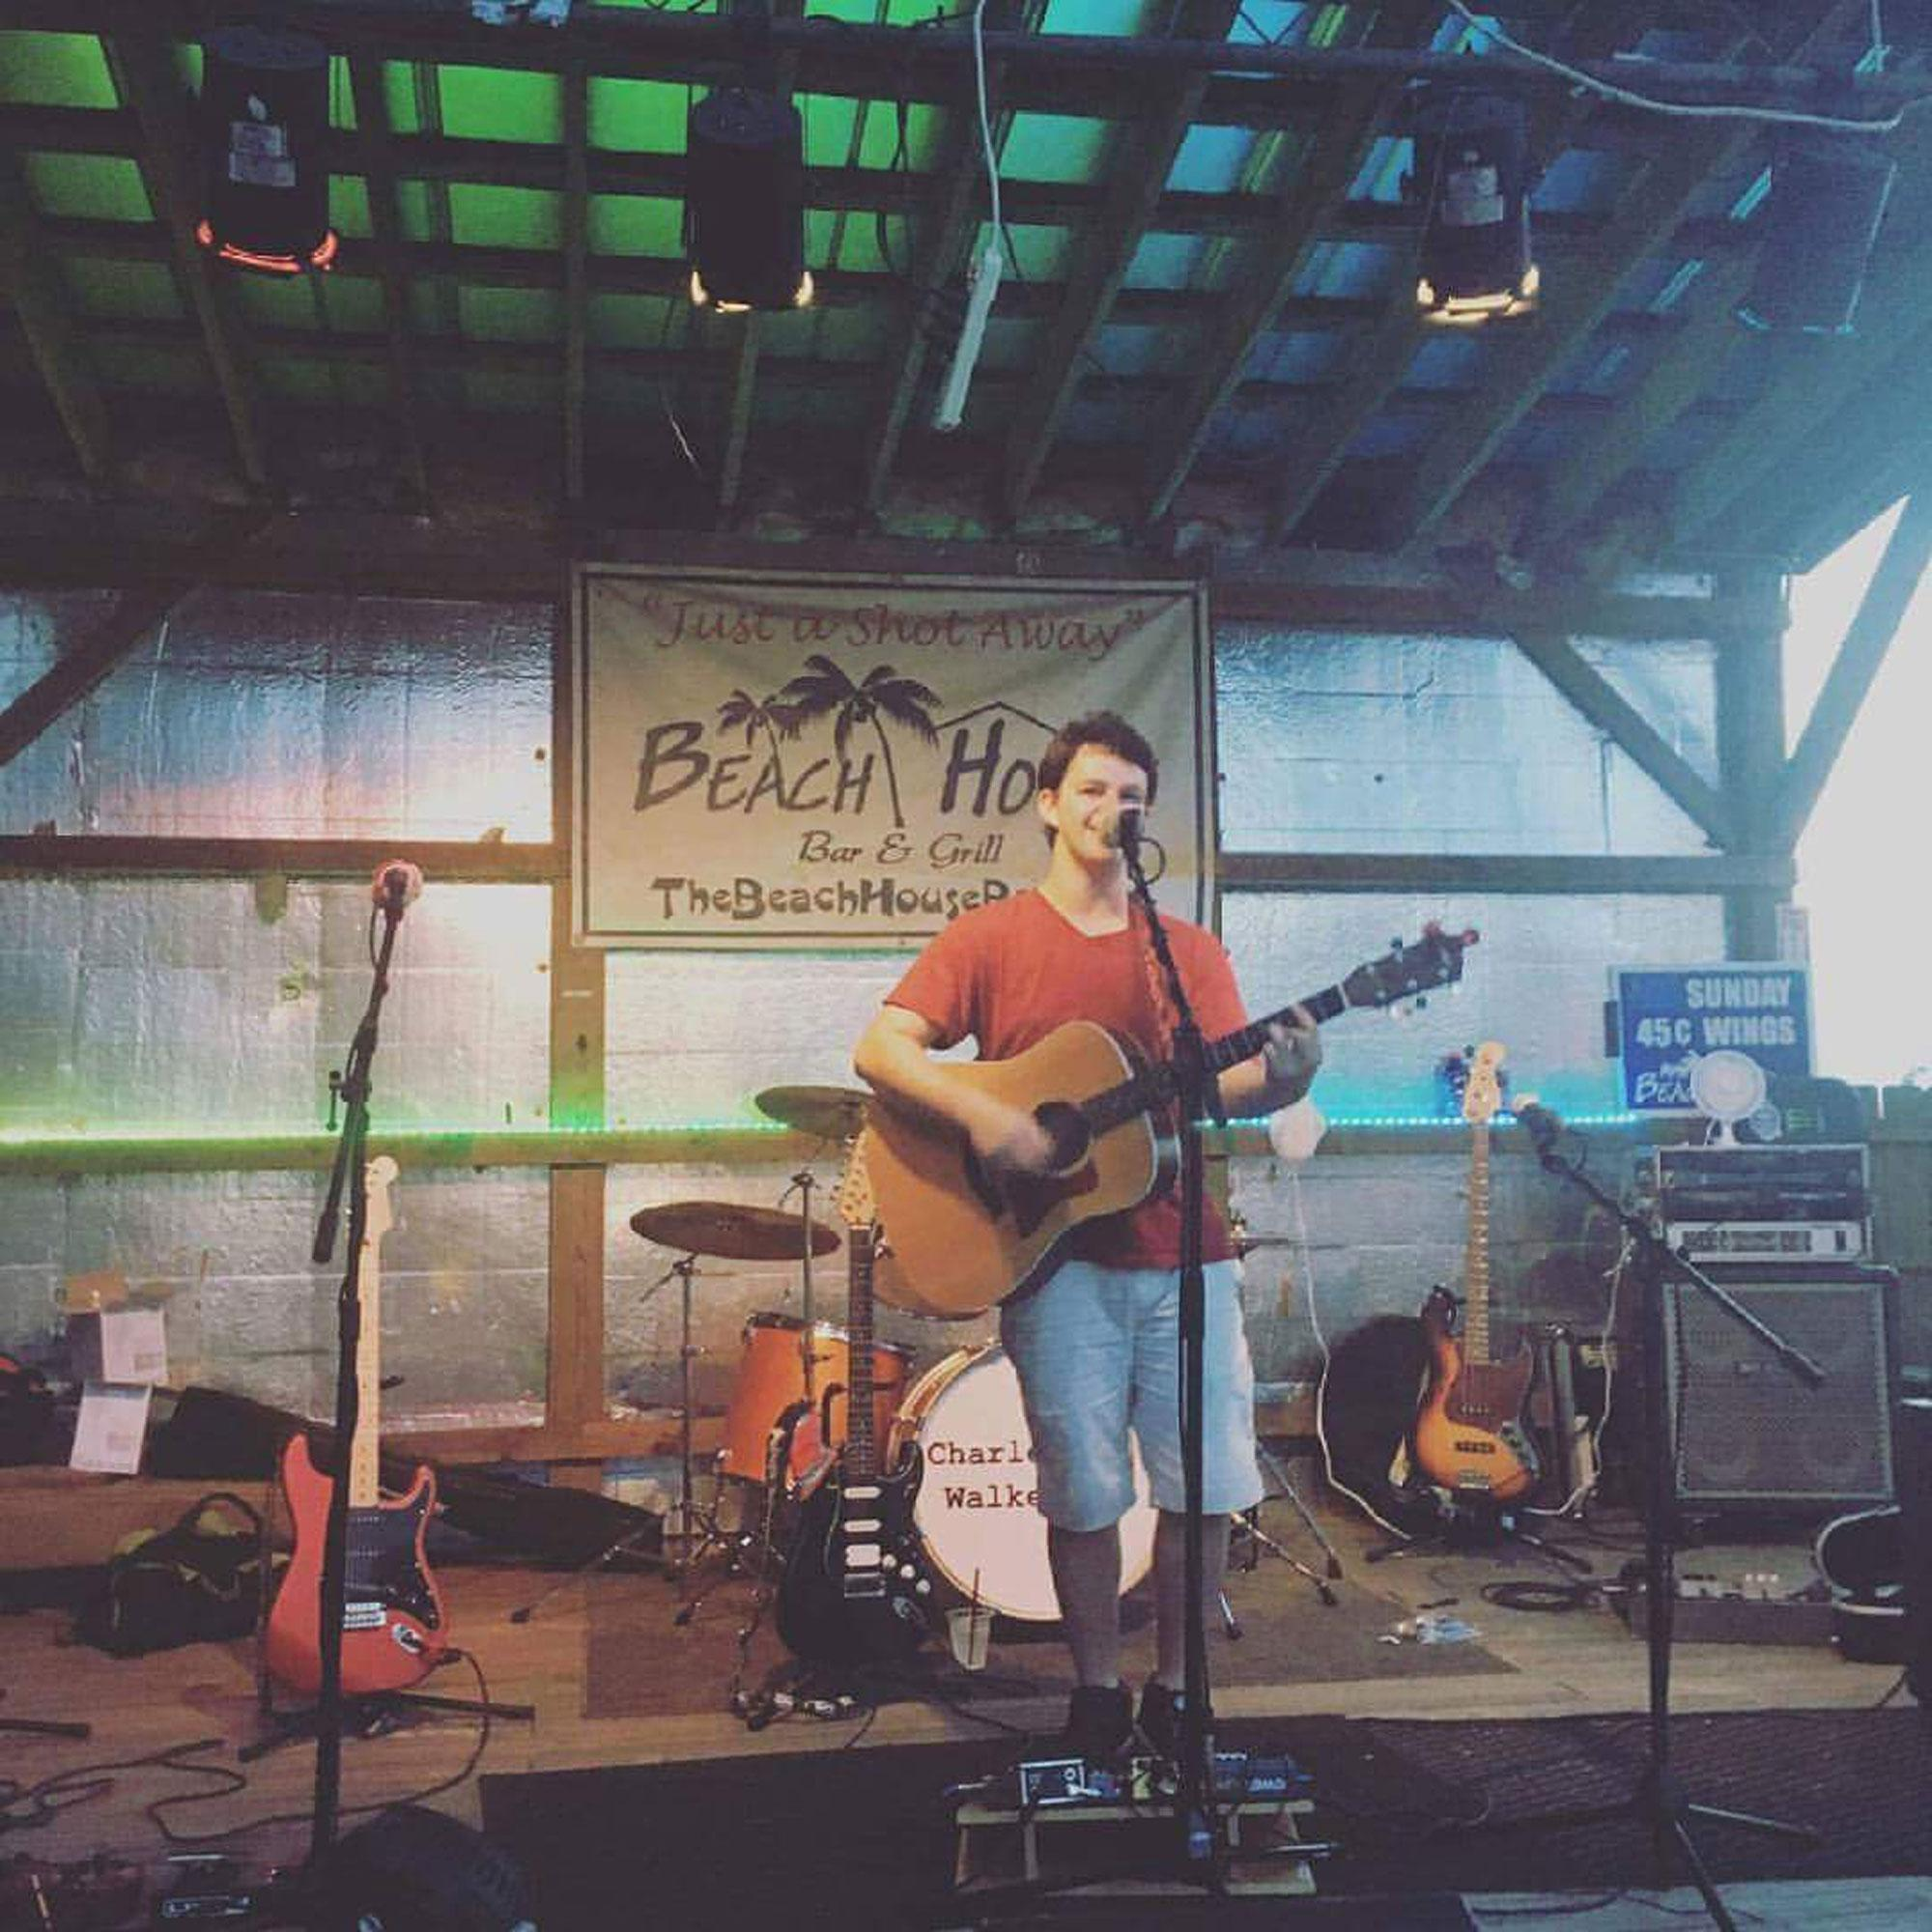 Charles+Walker+performing+in+Wilmington.+He+is+a+sophomore+communications+major+at+Appalachian+State+and+is+a+touring+singer-songwriter.